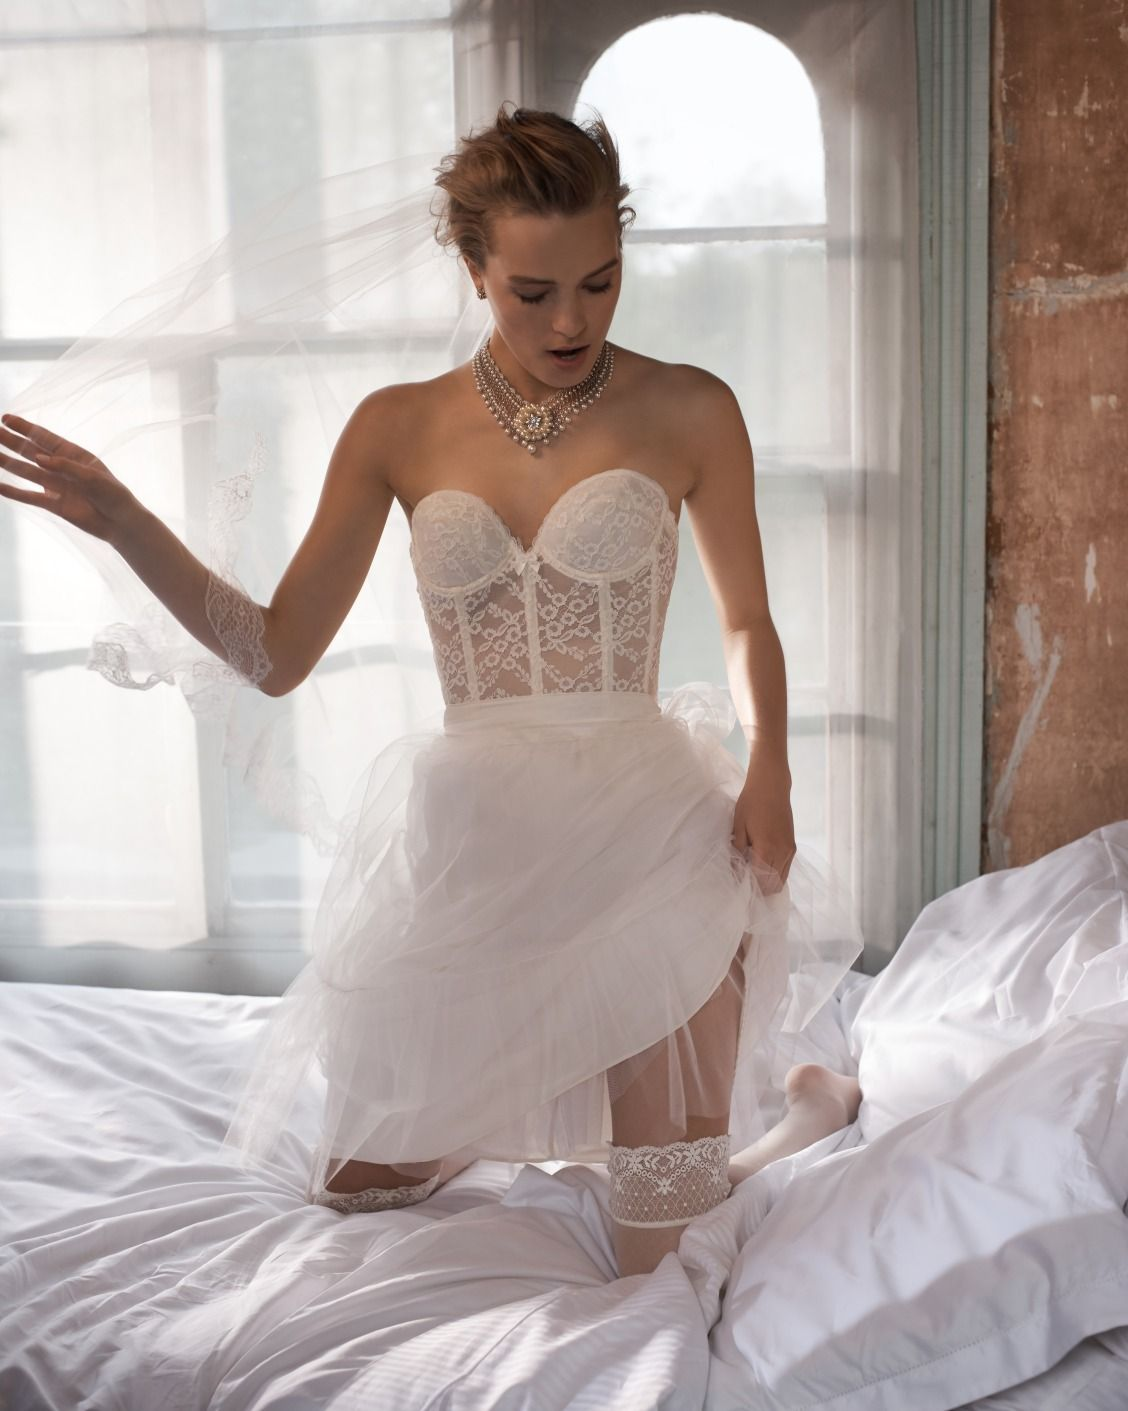 weekend in white | Filippa Lace Corset | Bridal Boudoir & Lingerie